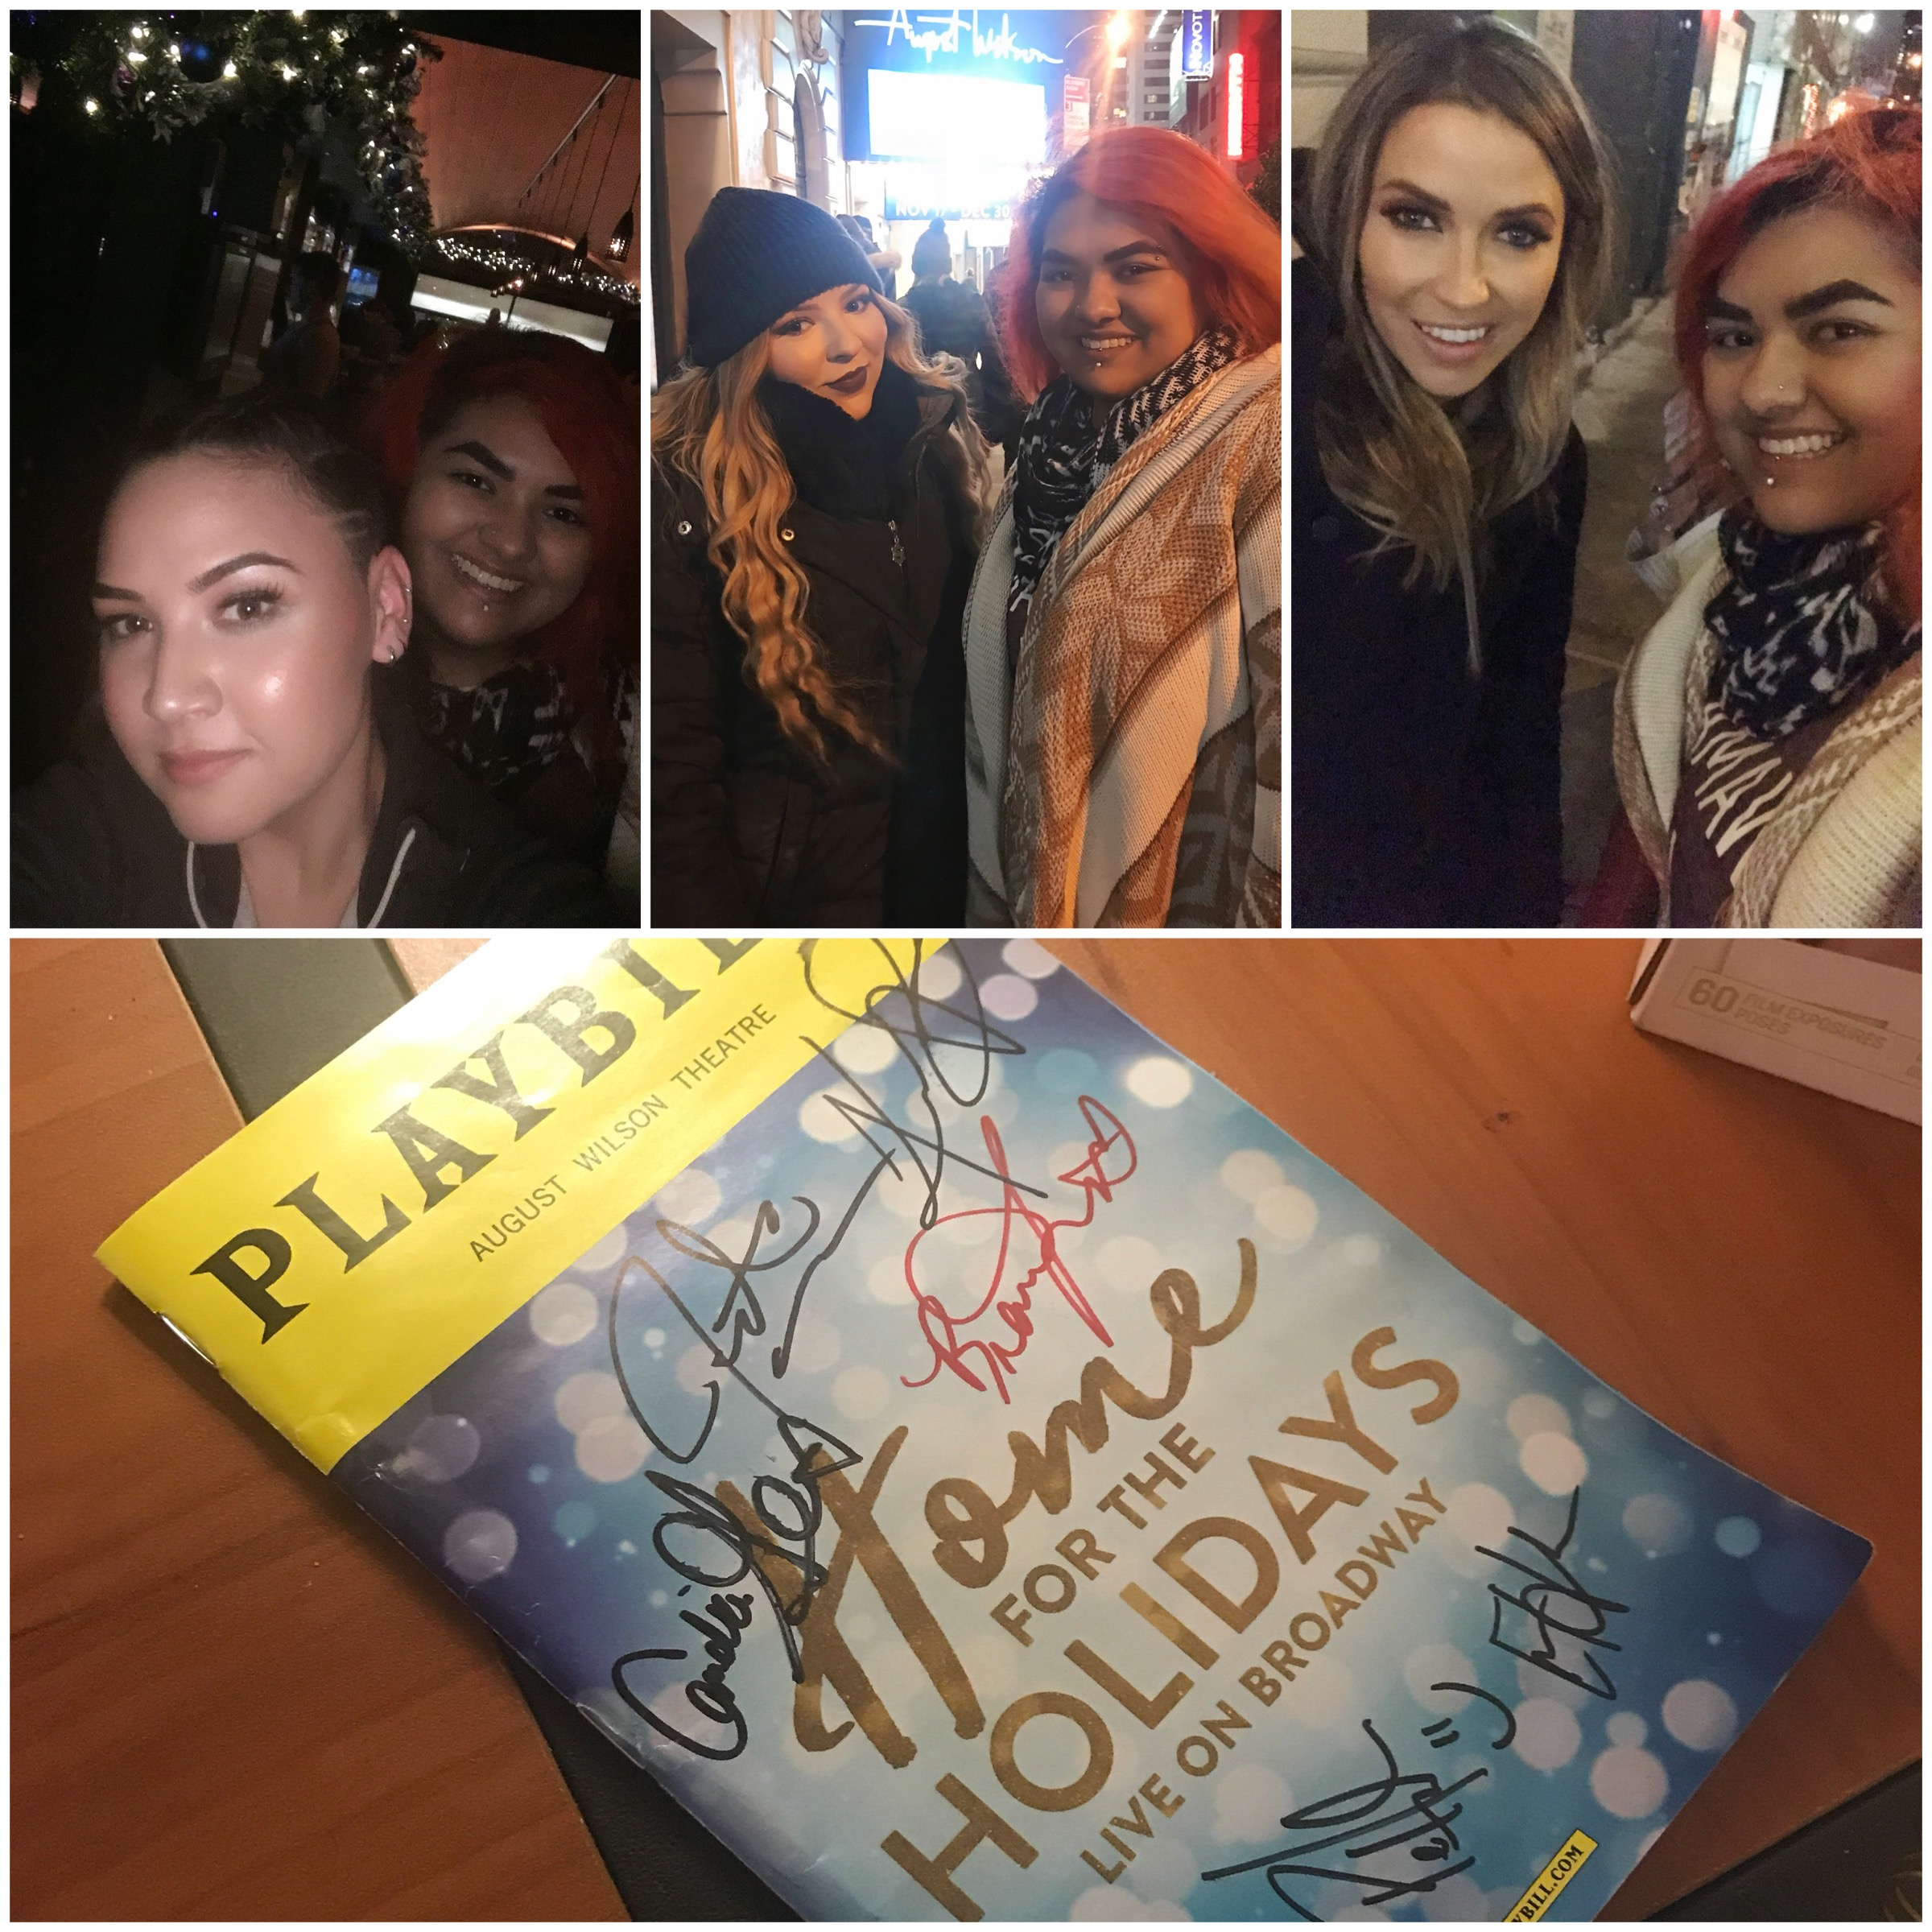 Danica, Bianca, Kaitlyn and I + a signed Playbill! :)